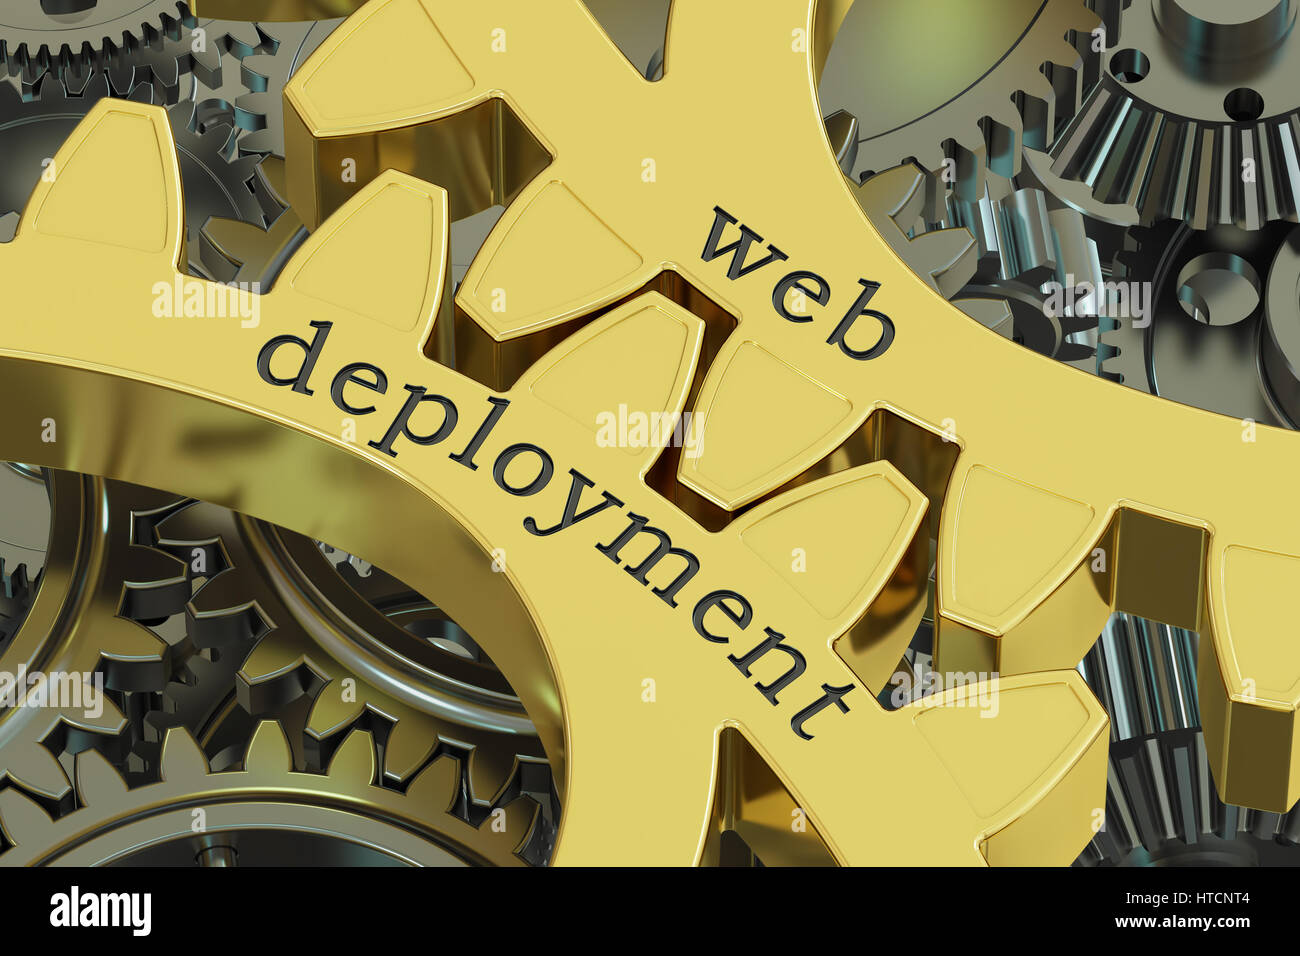 Web Deployment concept on the gearwheels, 3D rendering - Stock Image